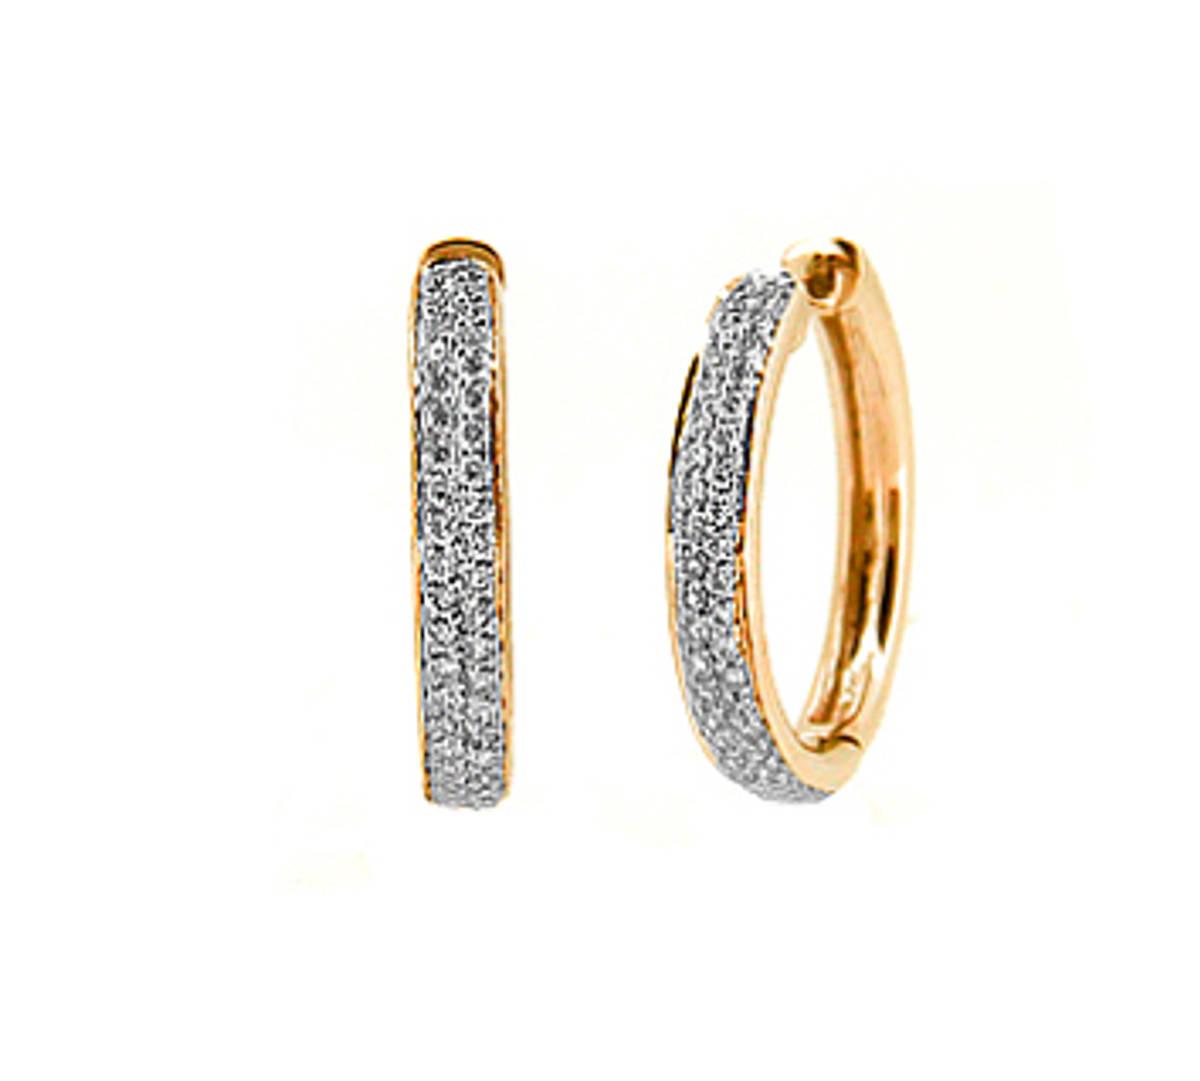 18k red gold brilliant cut diamond hoop earringsDETAILSCarat: total diamond weight 0.32ctsMetal: 18k red gold Made in Ireland